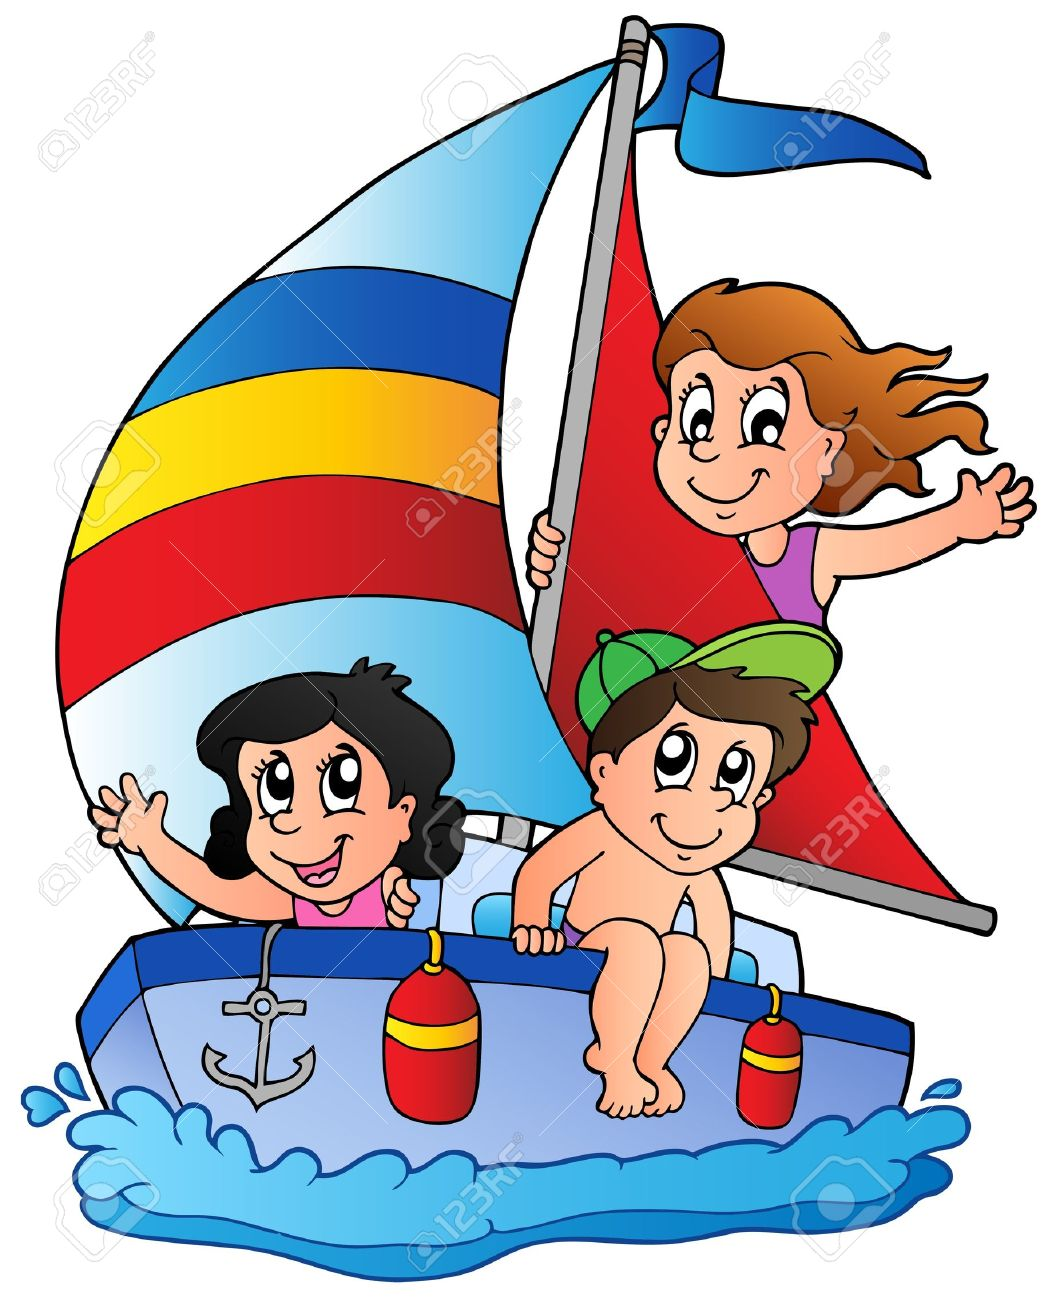 Sailboat clipart with people clipart freeuse Pictures Of Cartoon Boats | Free download best Pictures Of ... clipart freeuse